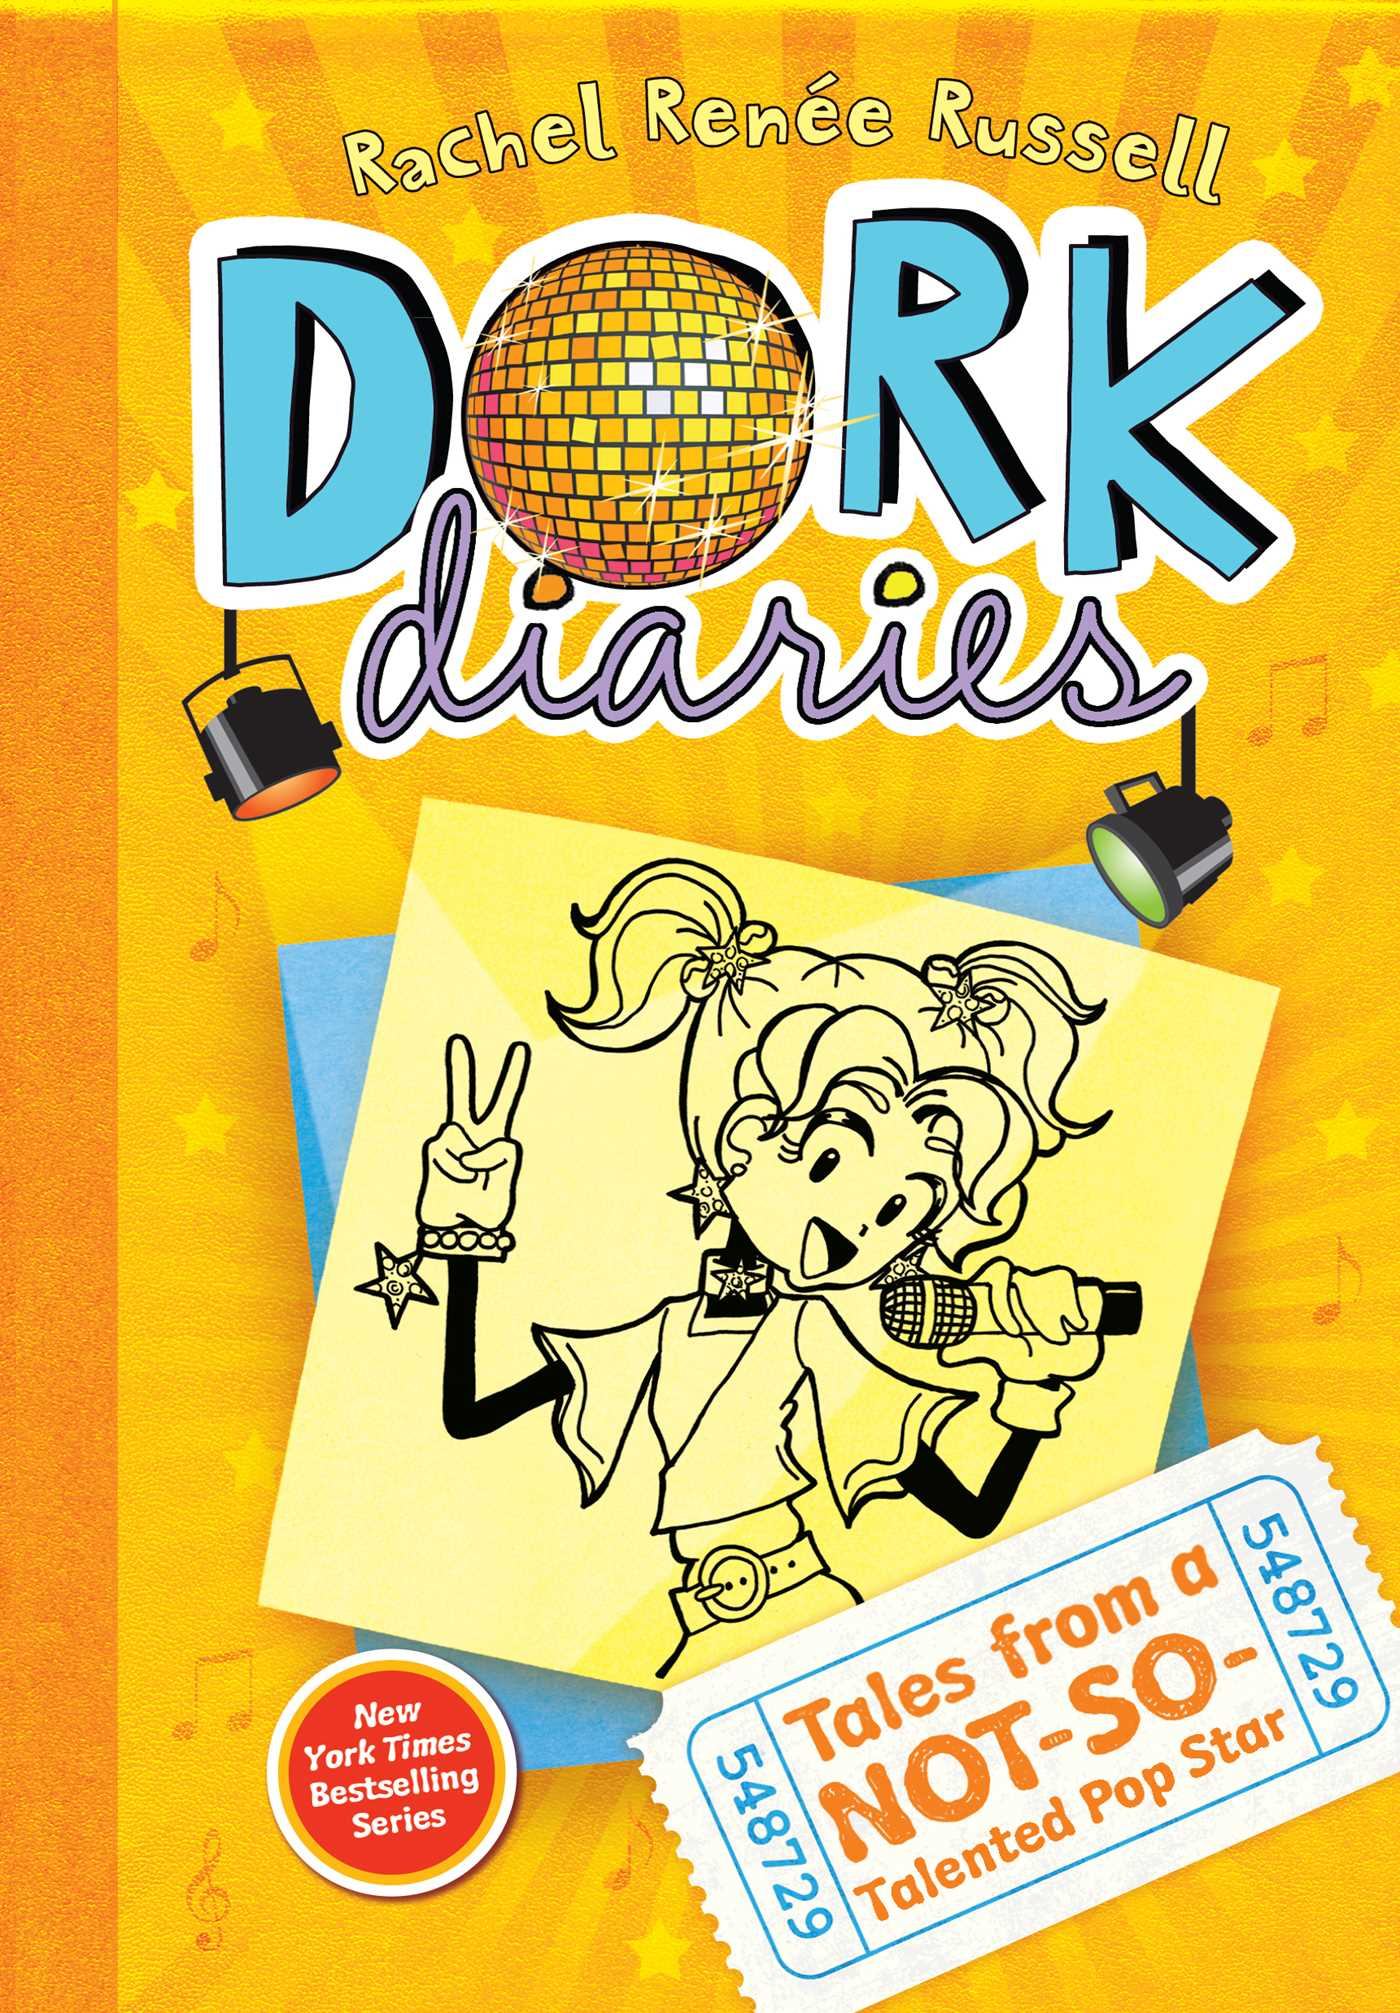 Dork diaries 3 enhanced ebook edition 9781442441231 hr